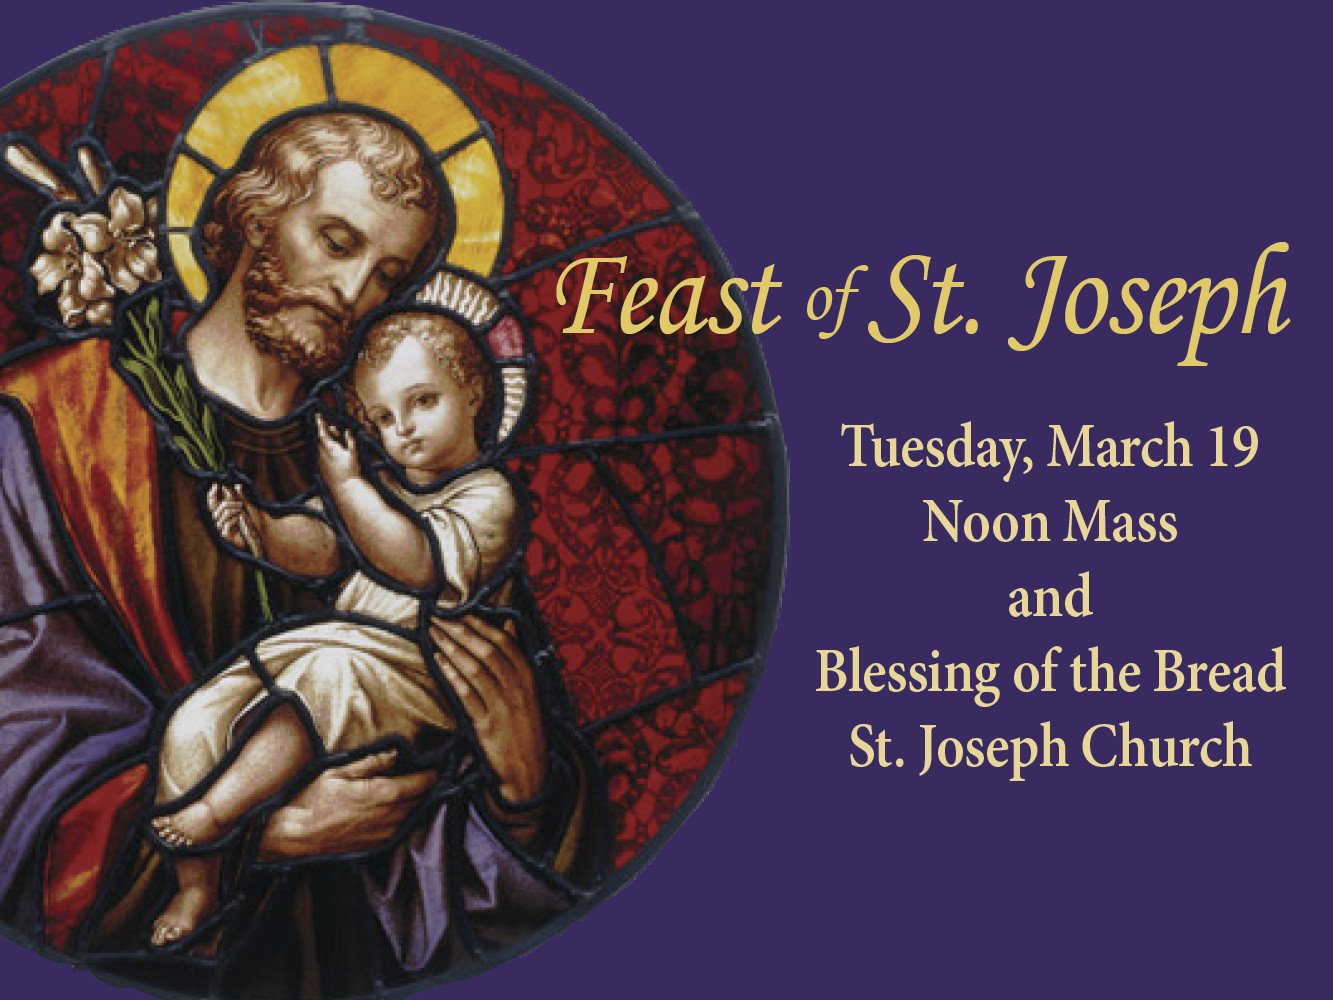 Feast of St. Joseph 2019